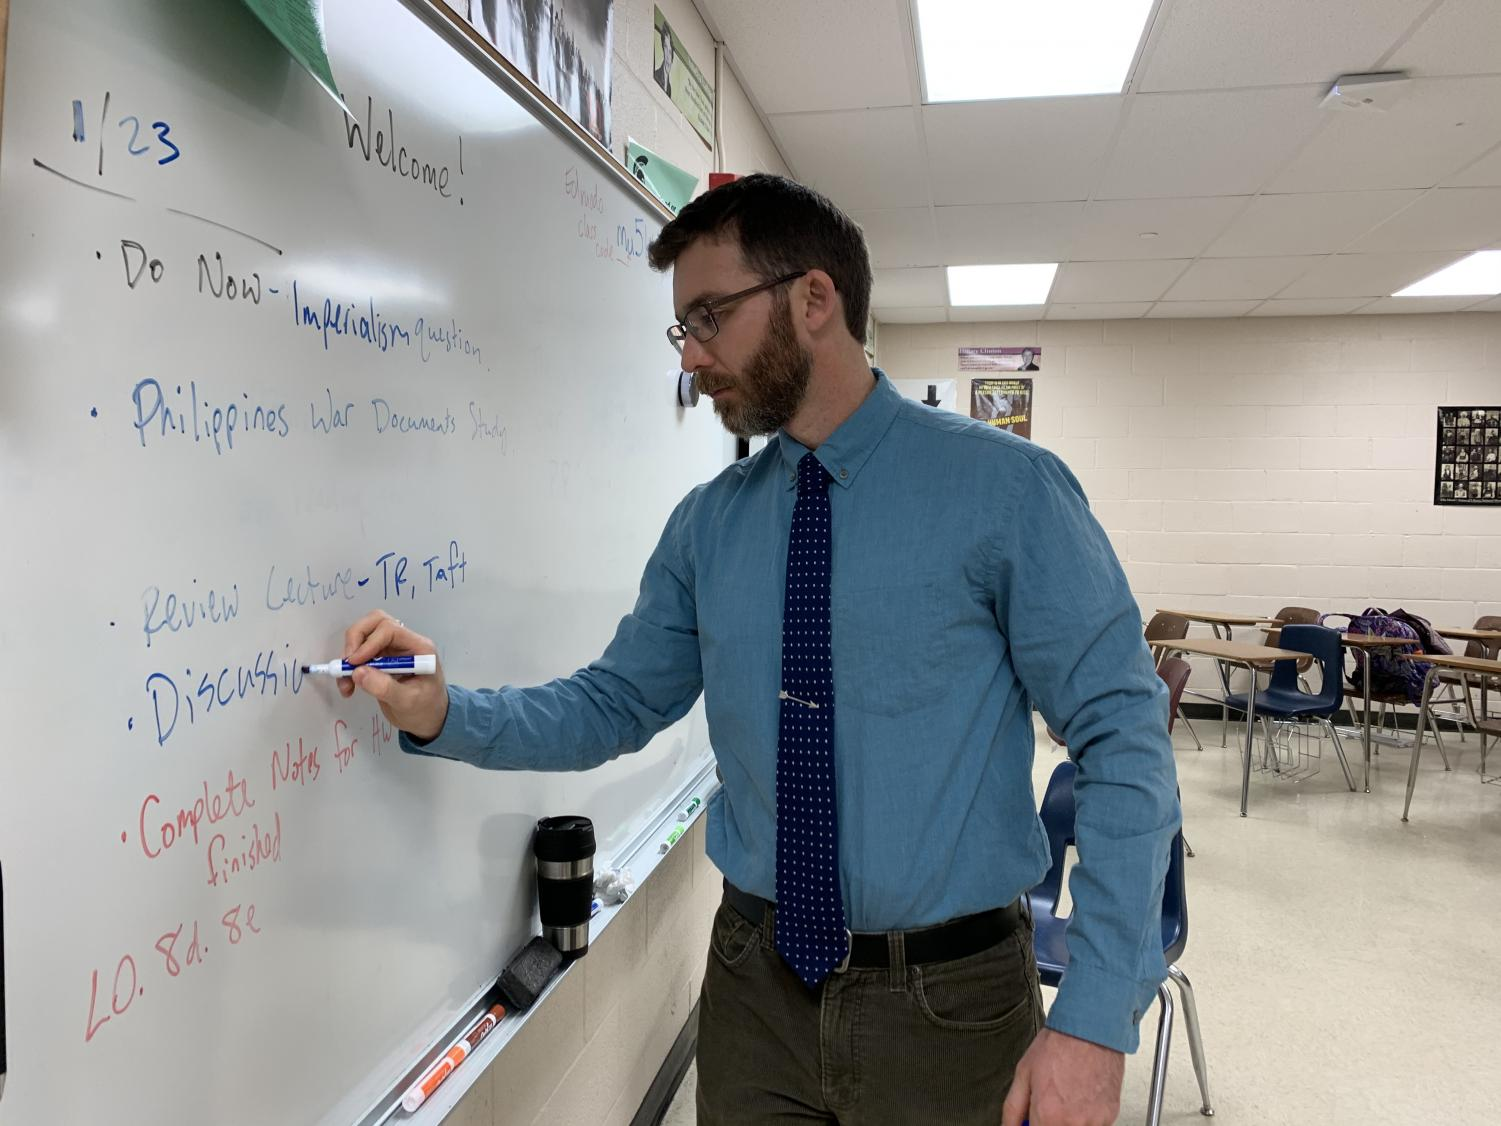 Writing the day's agenda on the white board, Kyle Tingley prepares for his classes of the day. Joining WSHS at the beginning of the second semester, Tingley teaches Duel Enrollment World History to upperclassmen students.